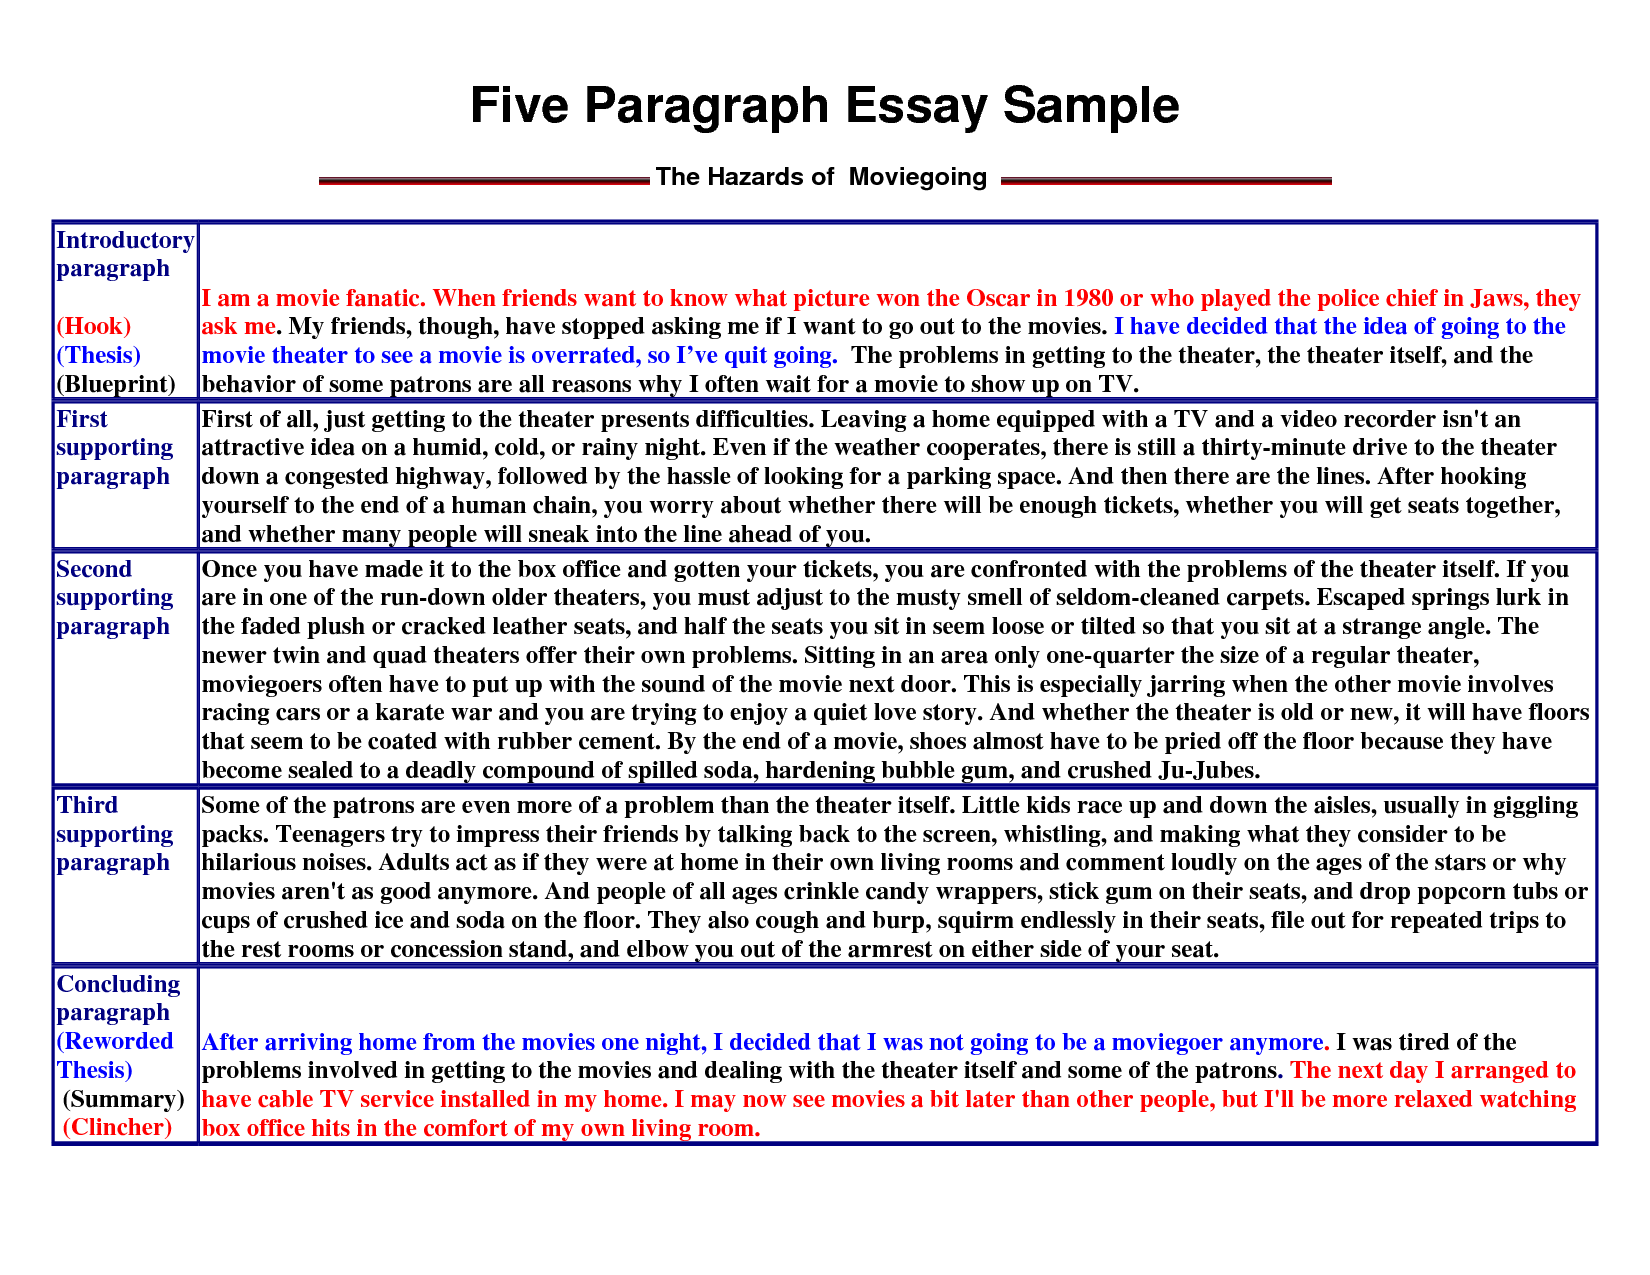 004 Writing Paragraph Essay Stunning A 5 Sample Pdf Graphic Organizer Outline Of Template Full